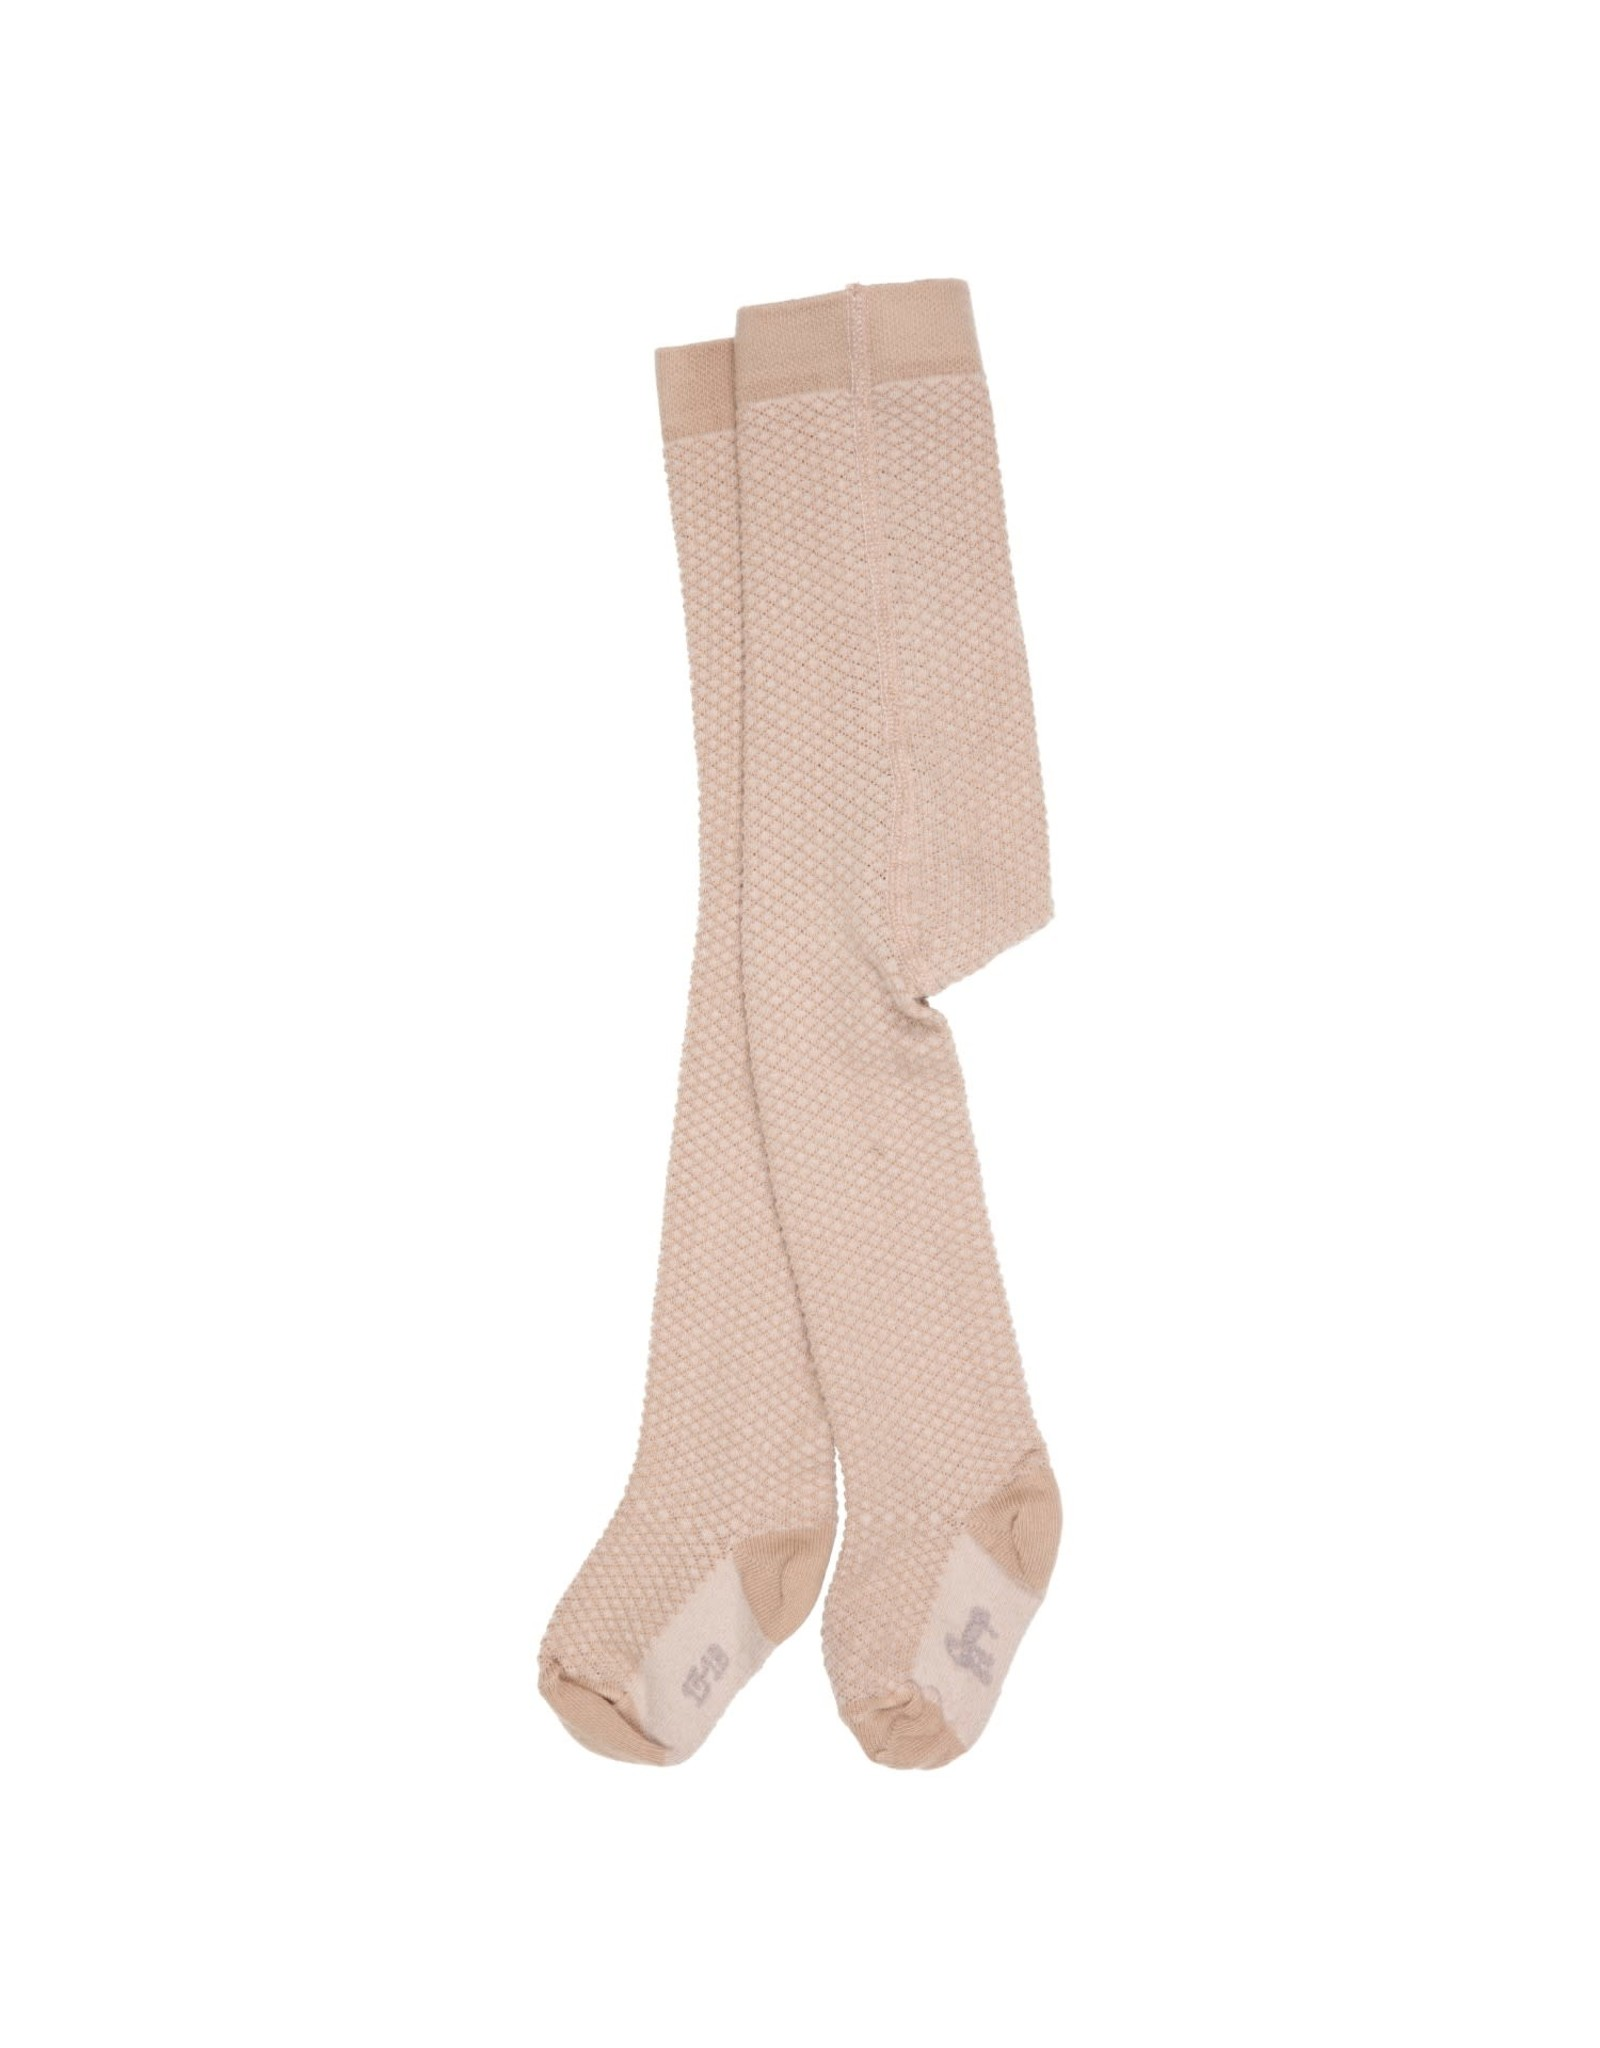 Gymp COLLANTS - girls tights - BABY CAMEL